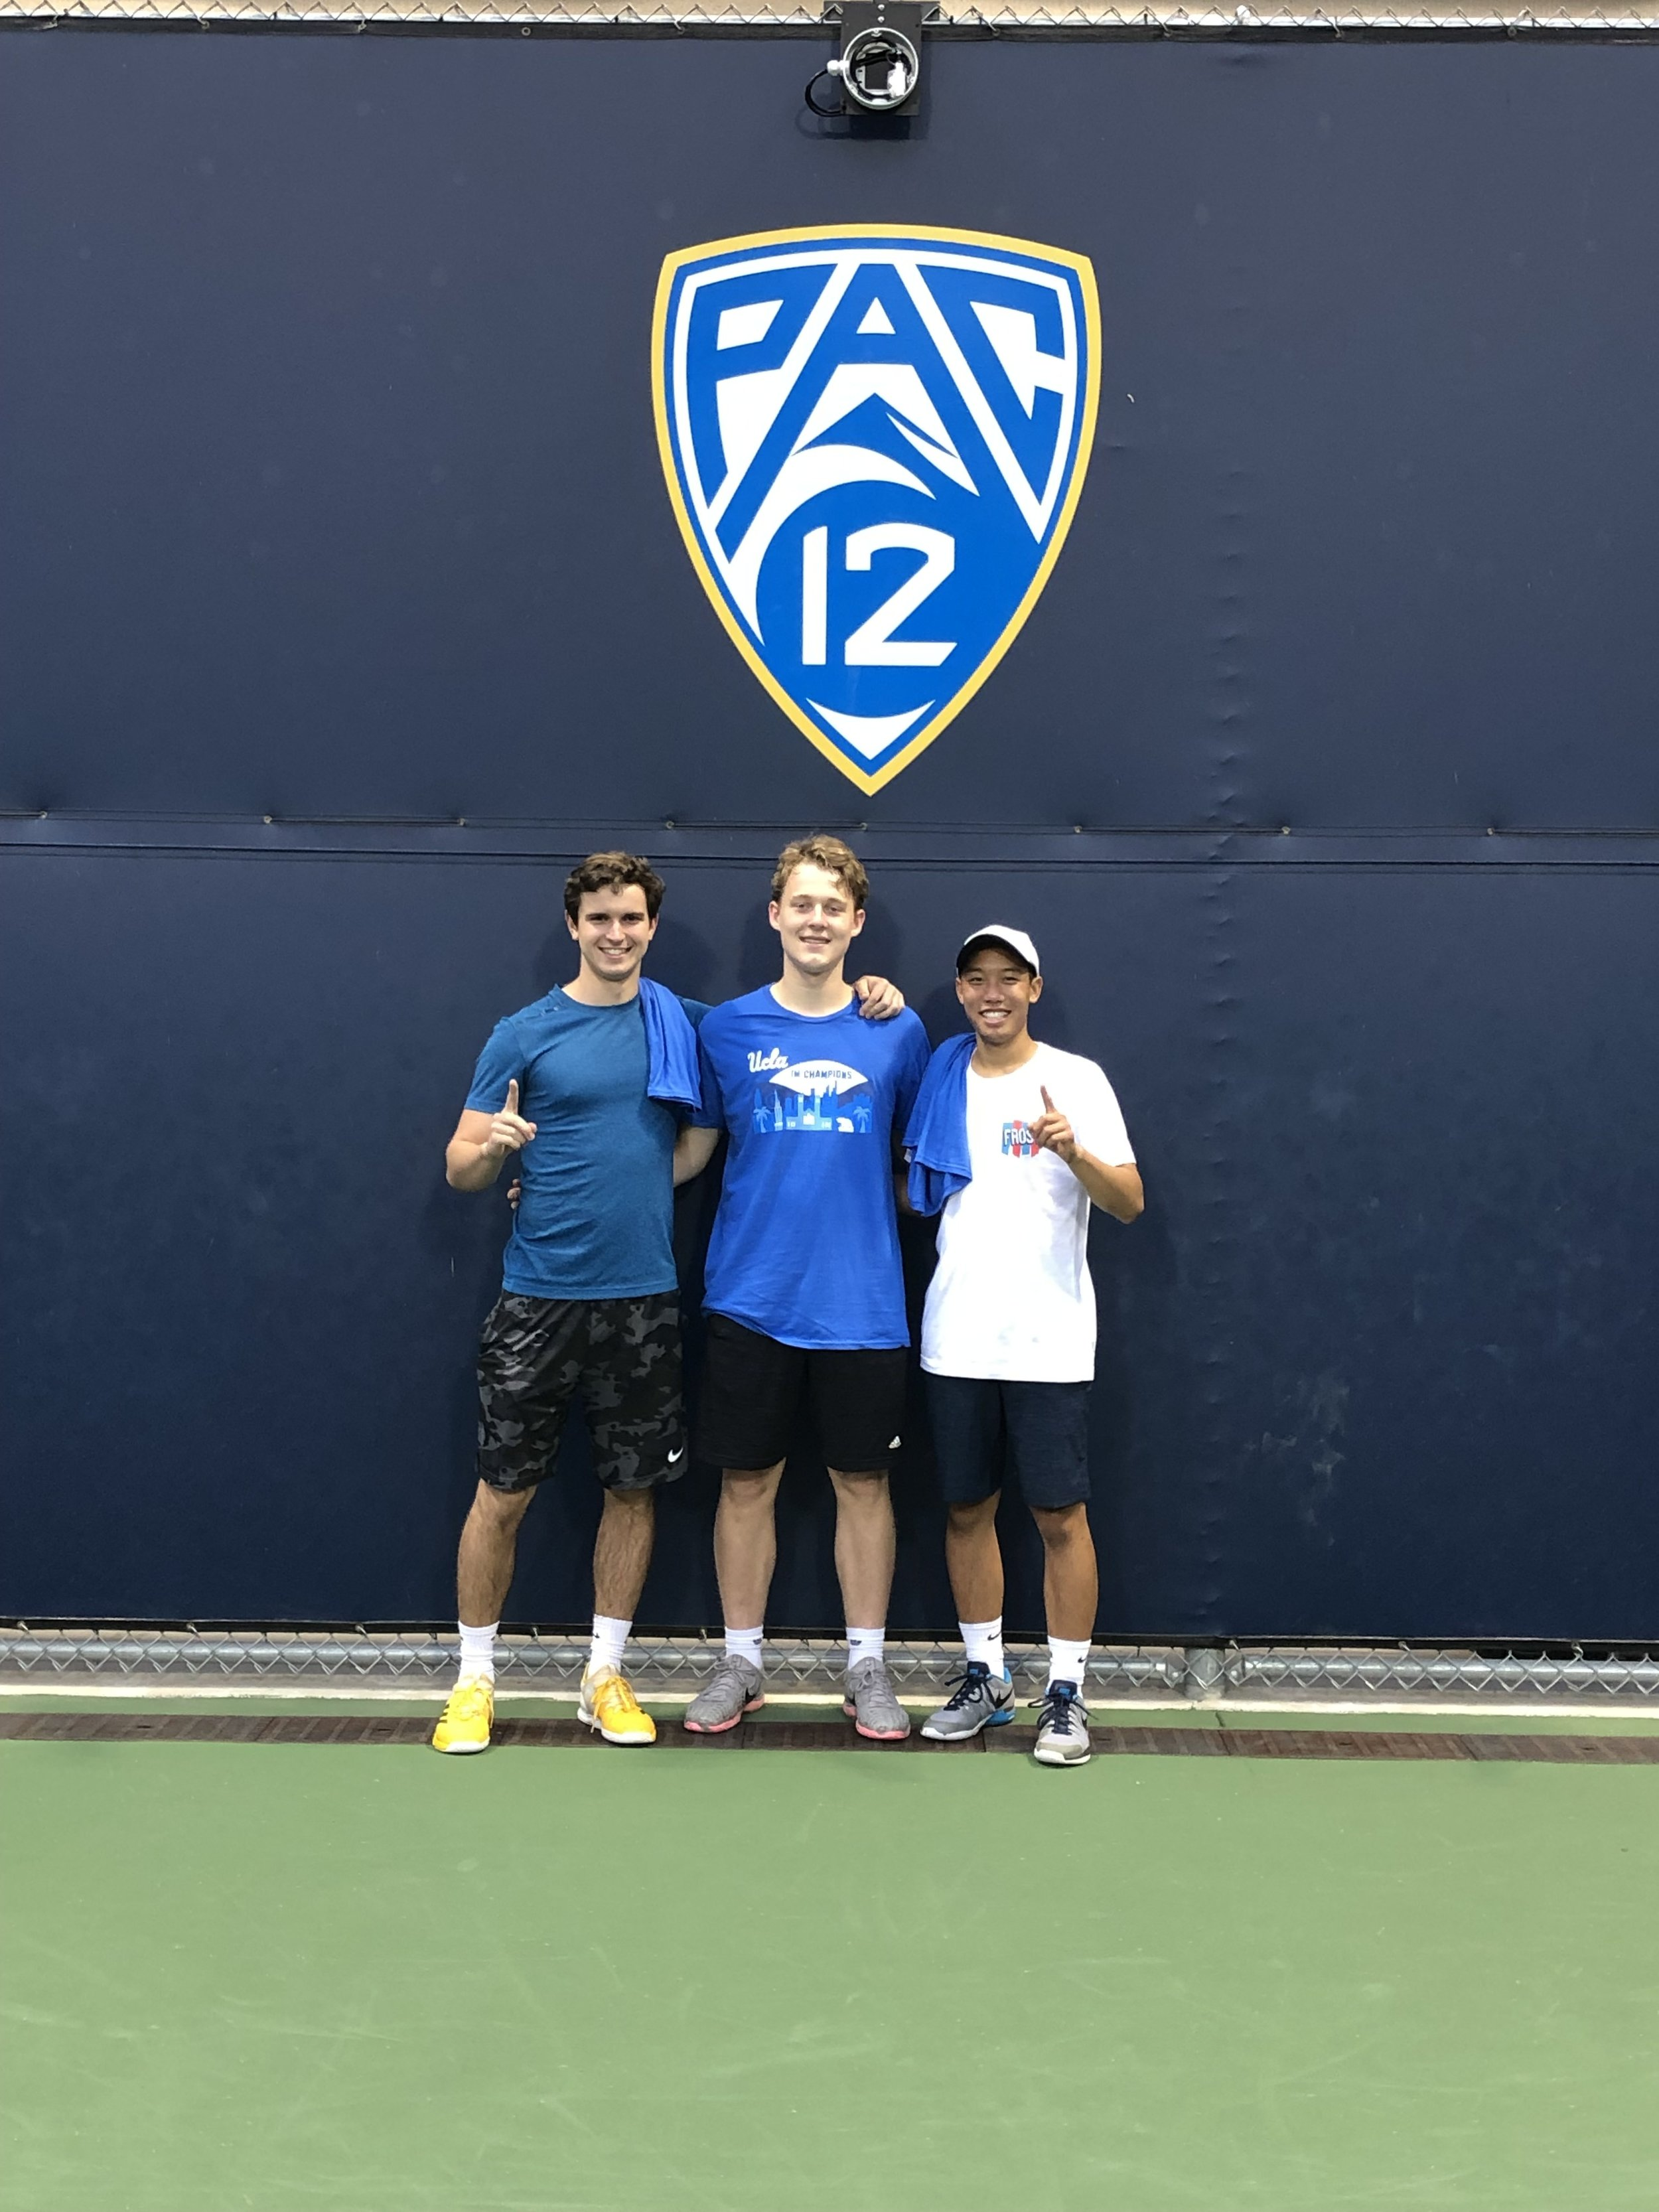 2019 IM Fraternity League Tennis Champs